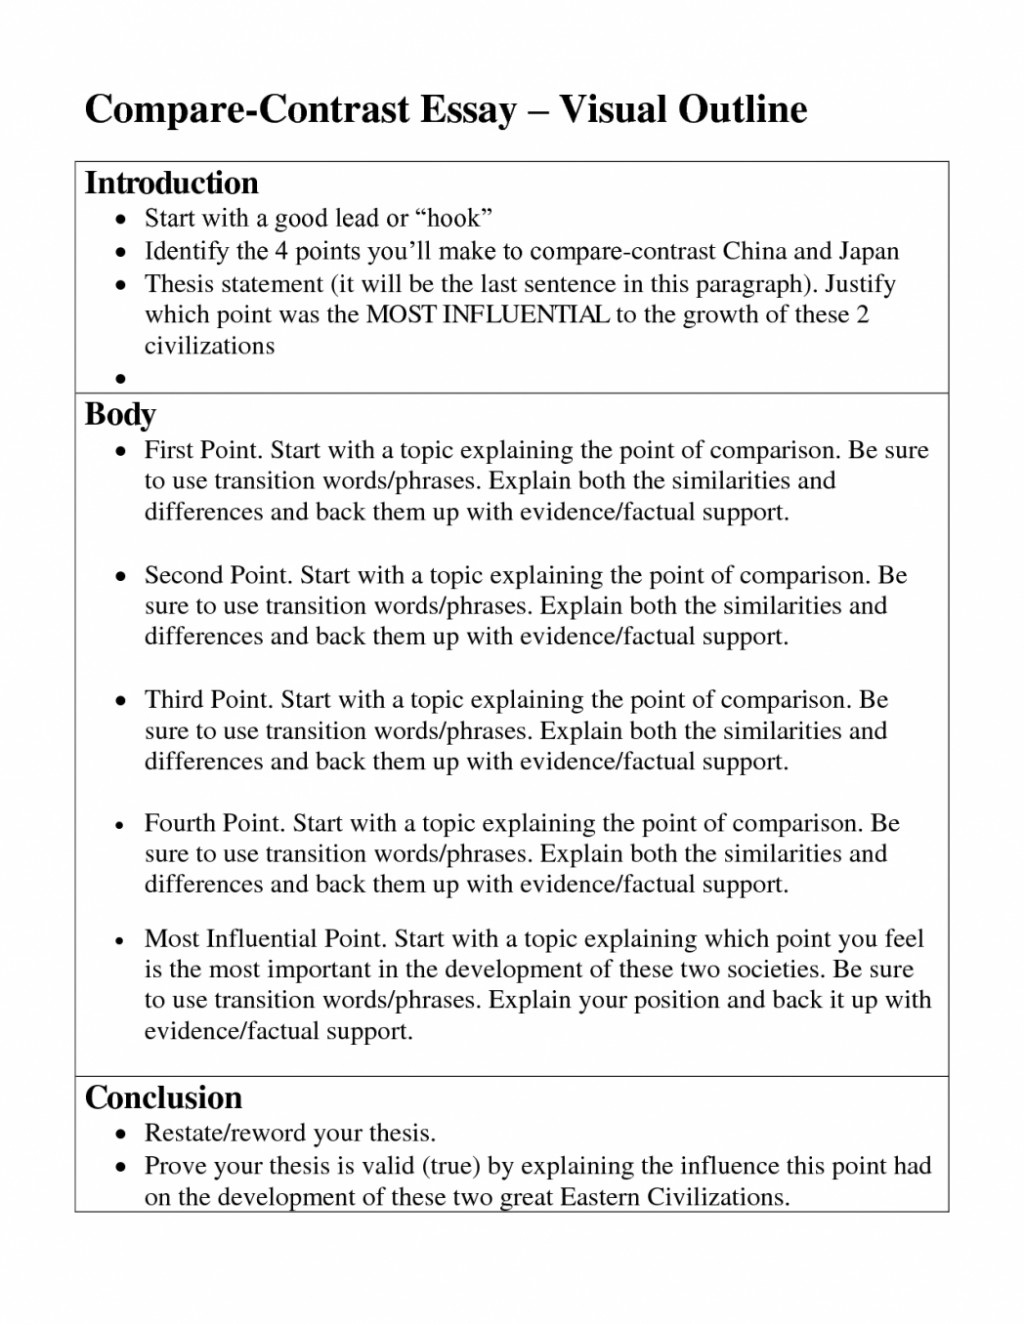 009 Contrast Essay Topics Example Compare And For High School Students English College Pdf Research Paper Astounding Comparison Middle Elementary Prompts Large